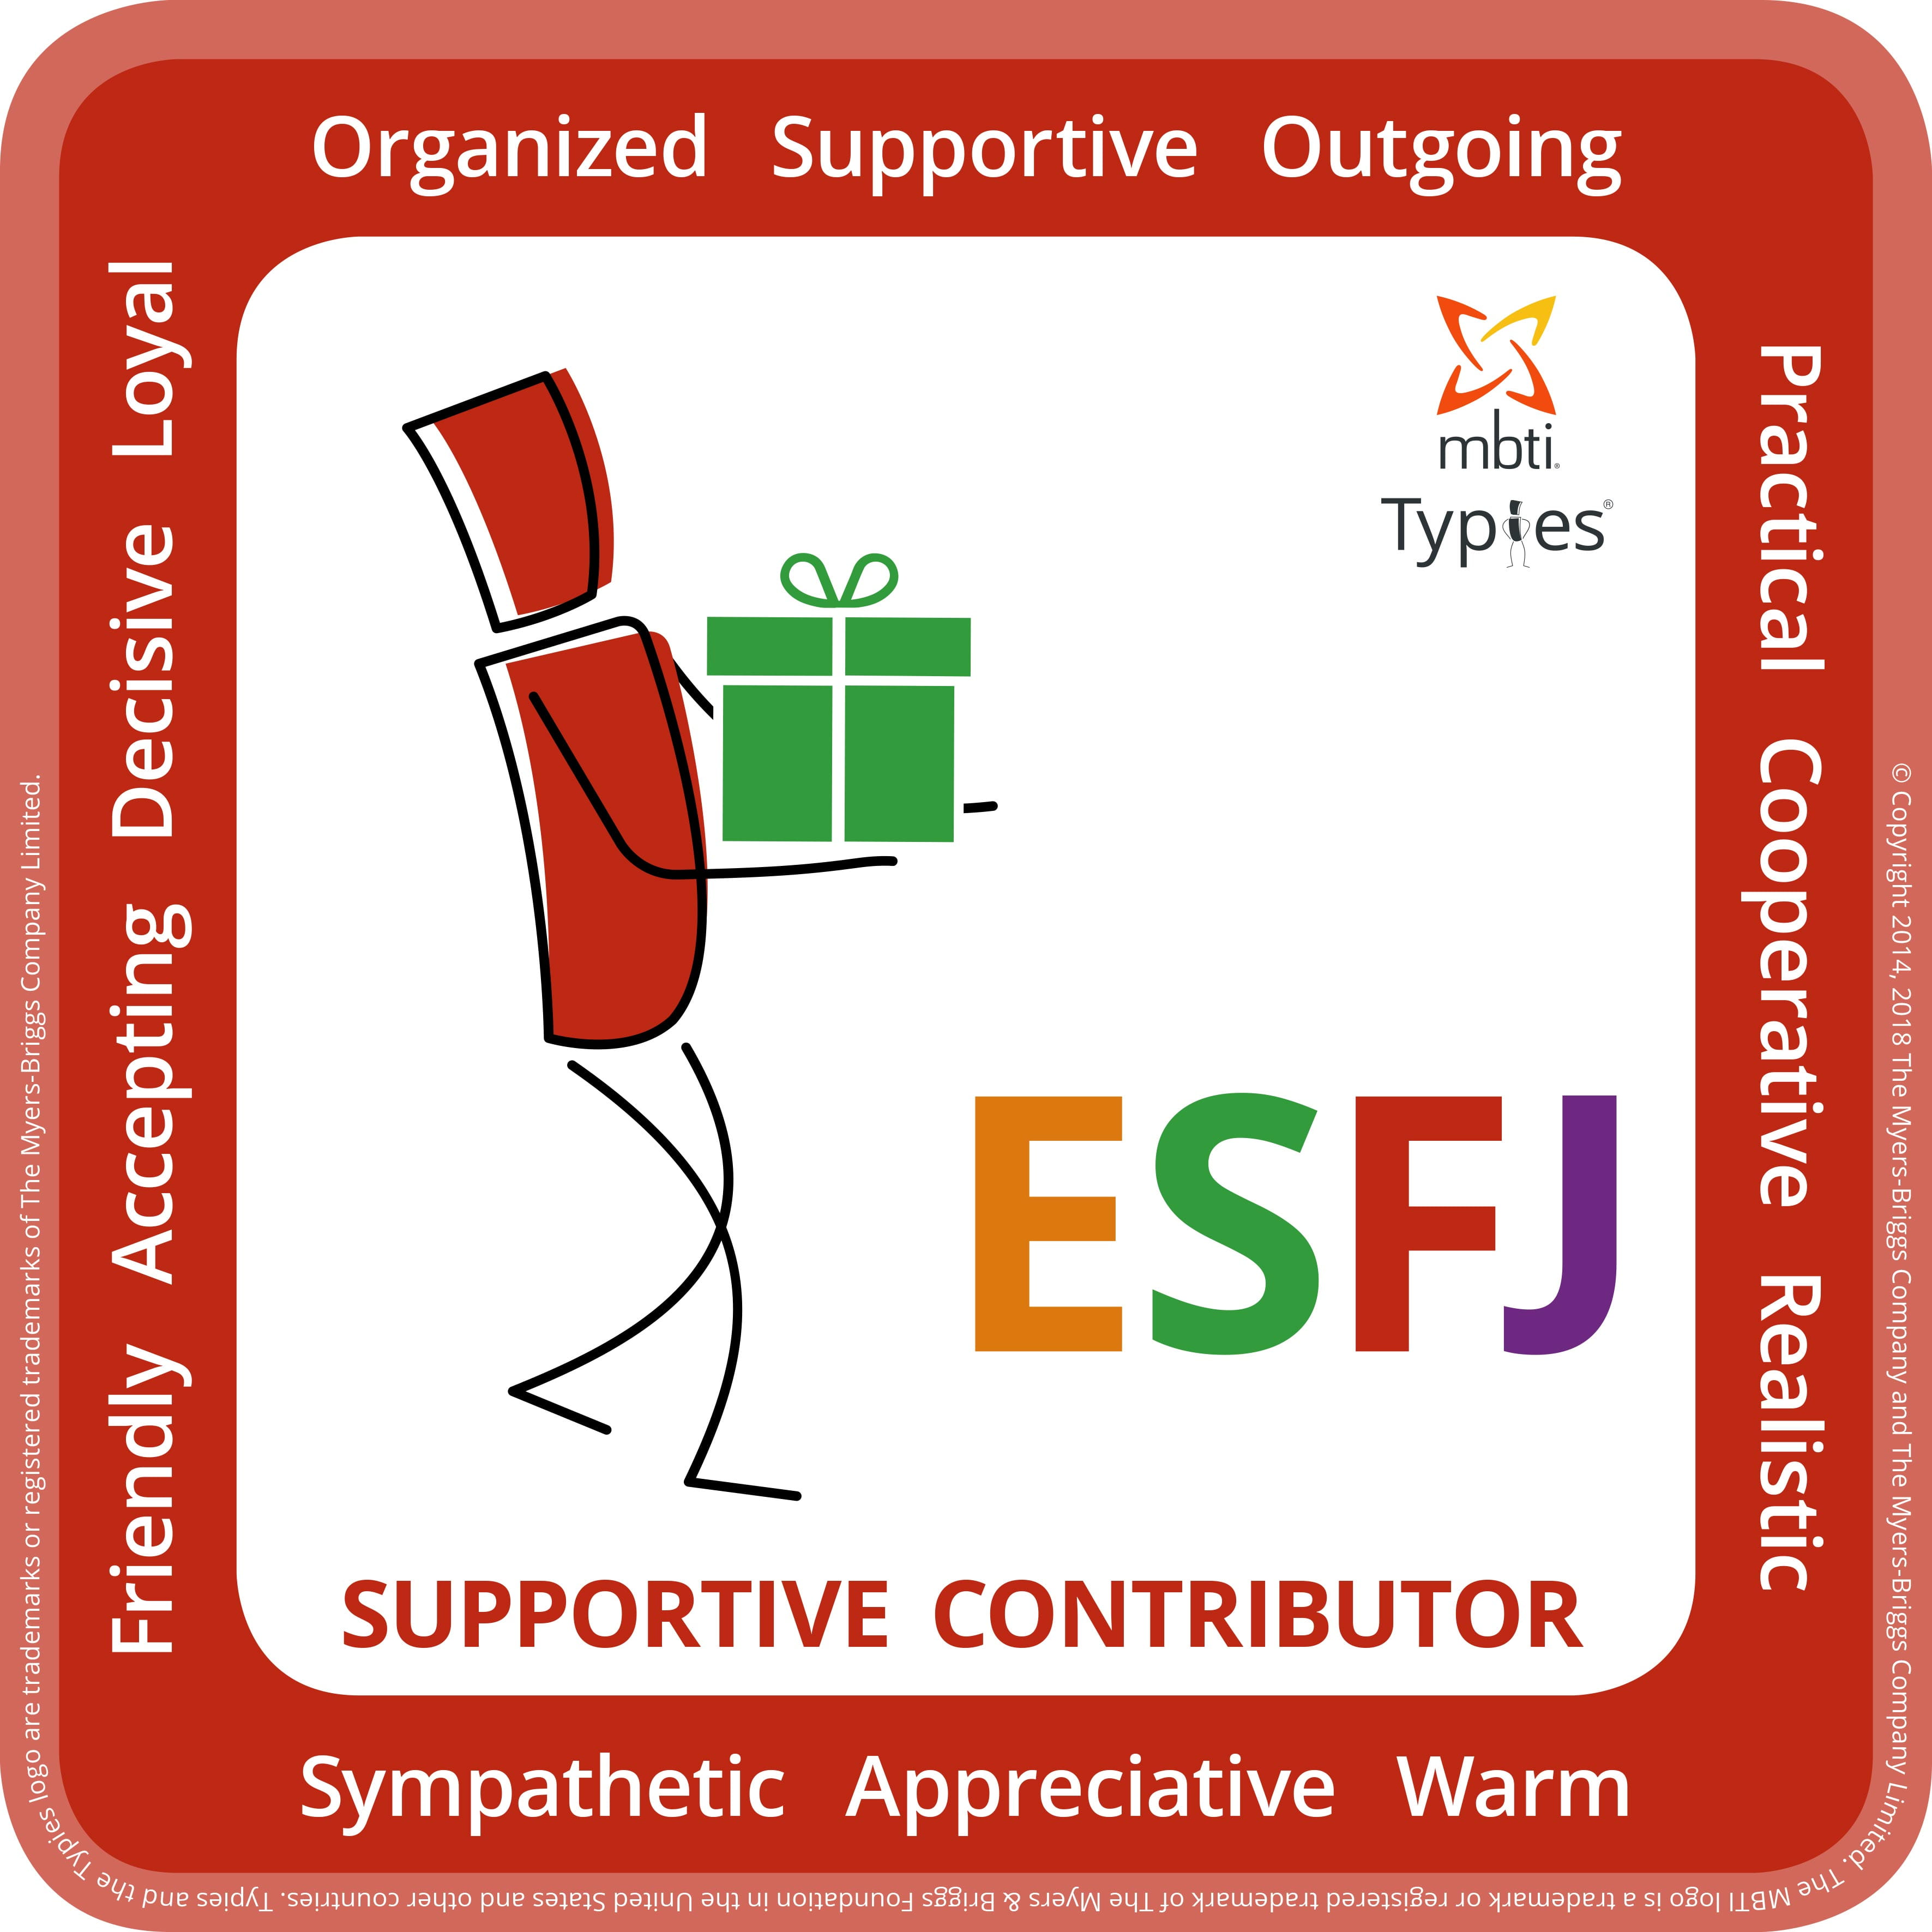 Typical characteristics of an ESFJ